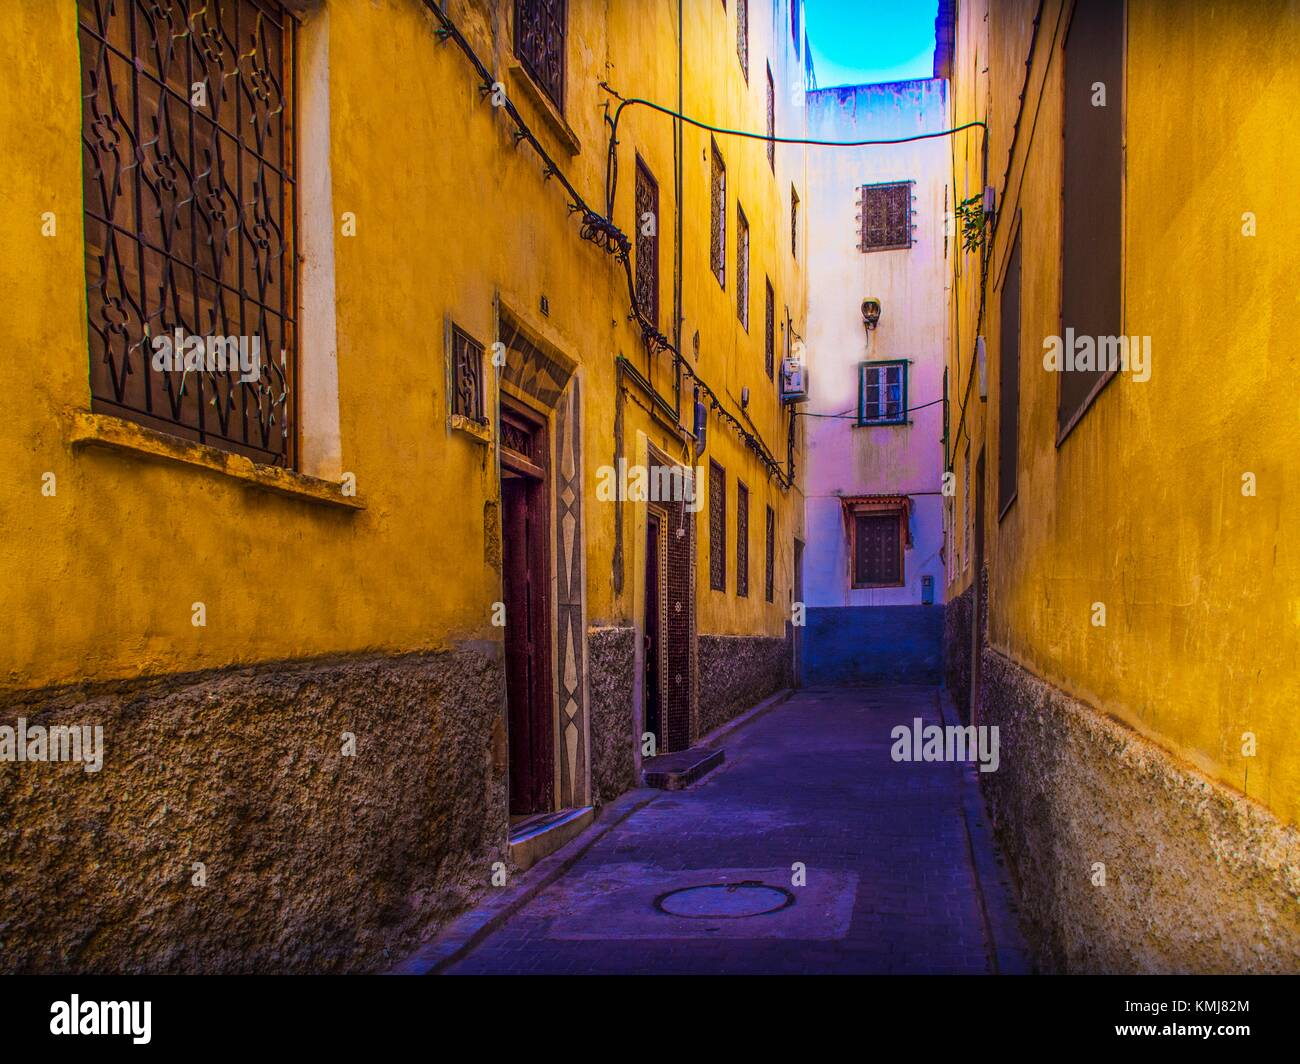 Morocco, Fes, street in the Ziat area, 'Medina' (old part) of Fes. - Stock Image